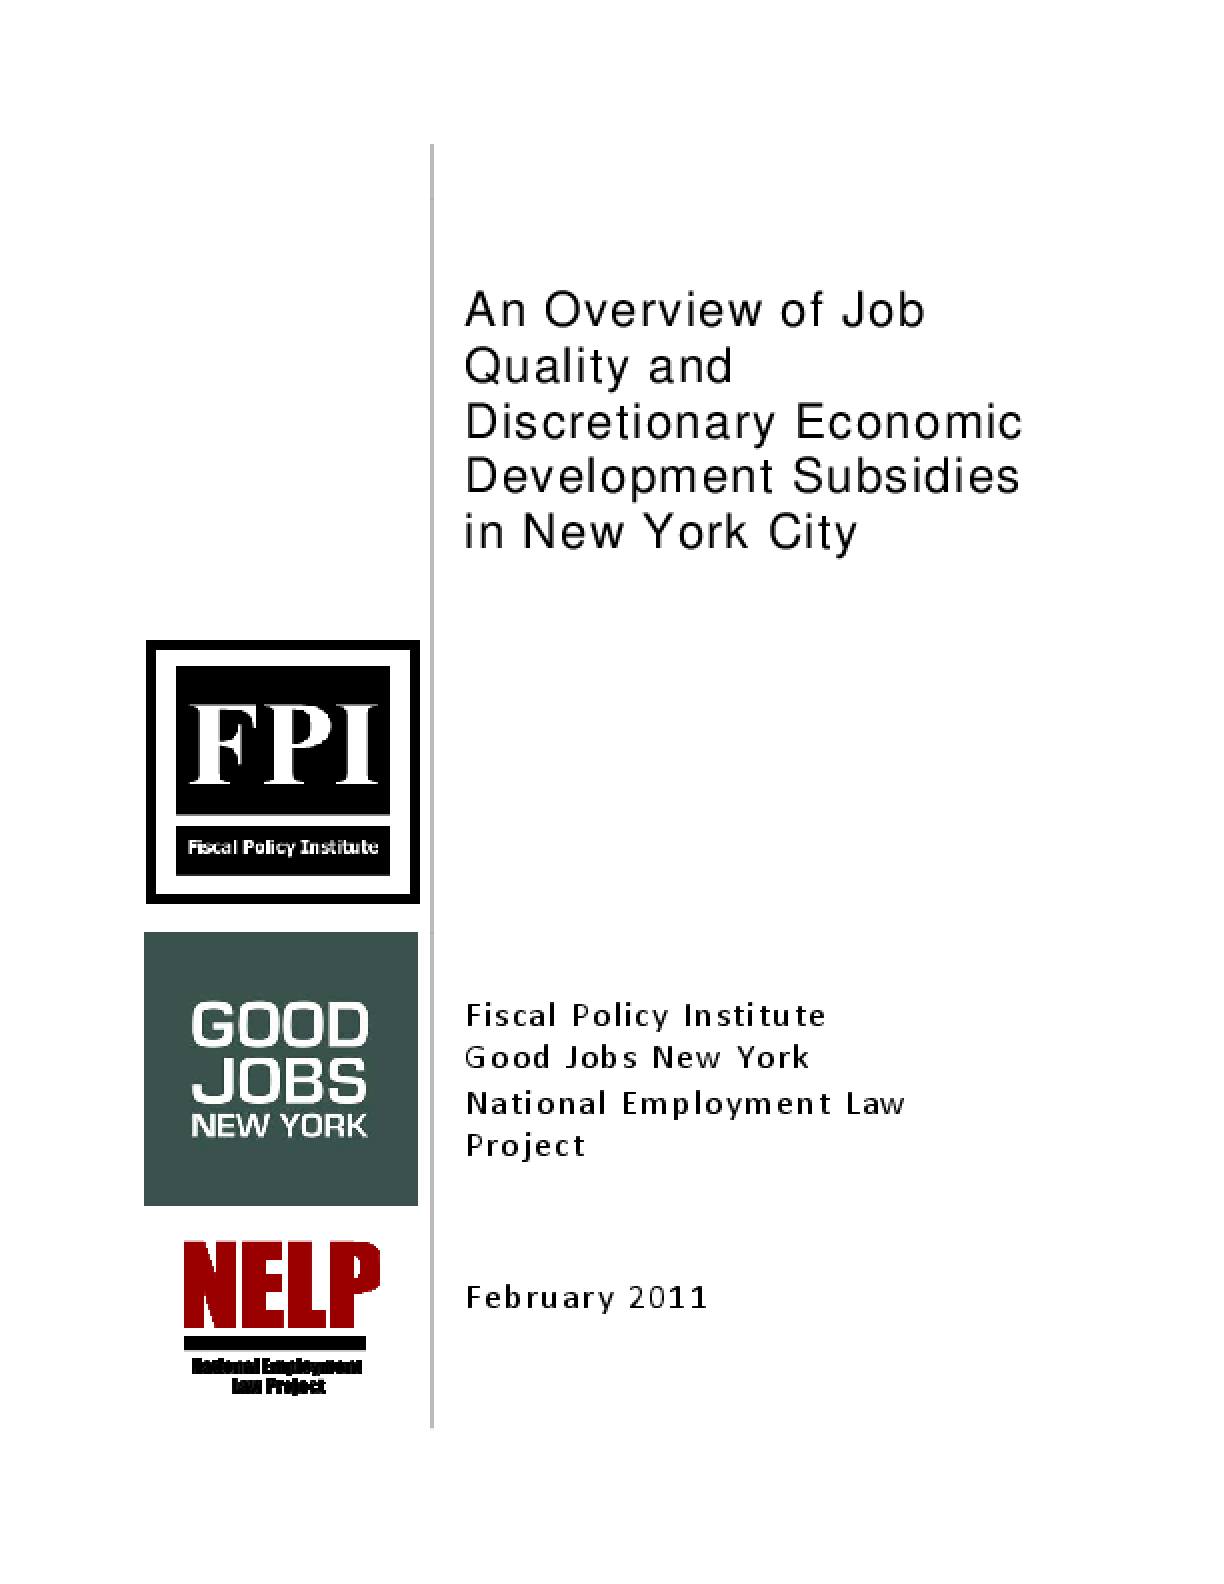 An Overview of Job Quality and Discretionary Economic Development Subsidies in New York City